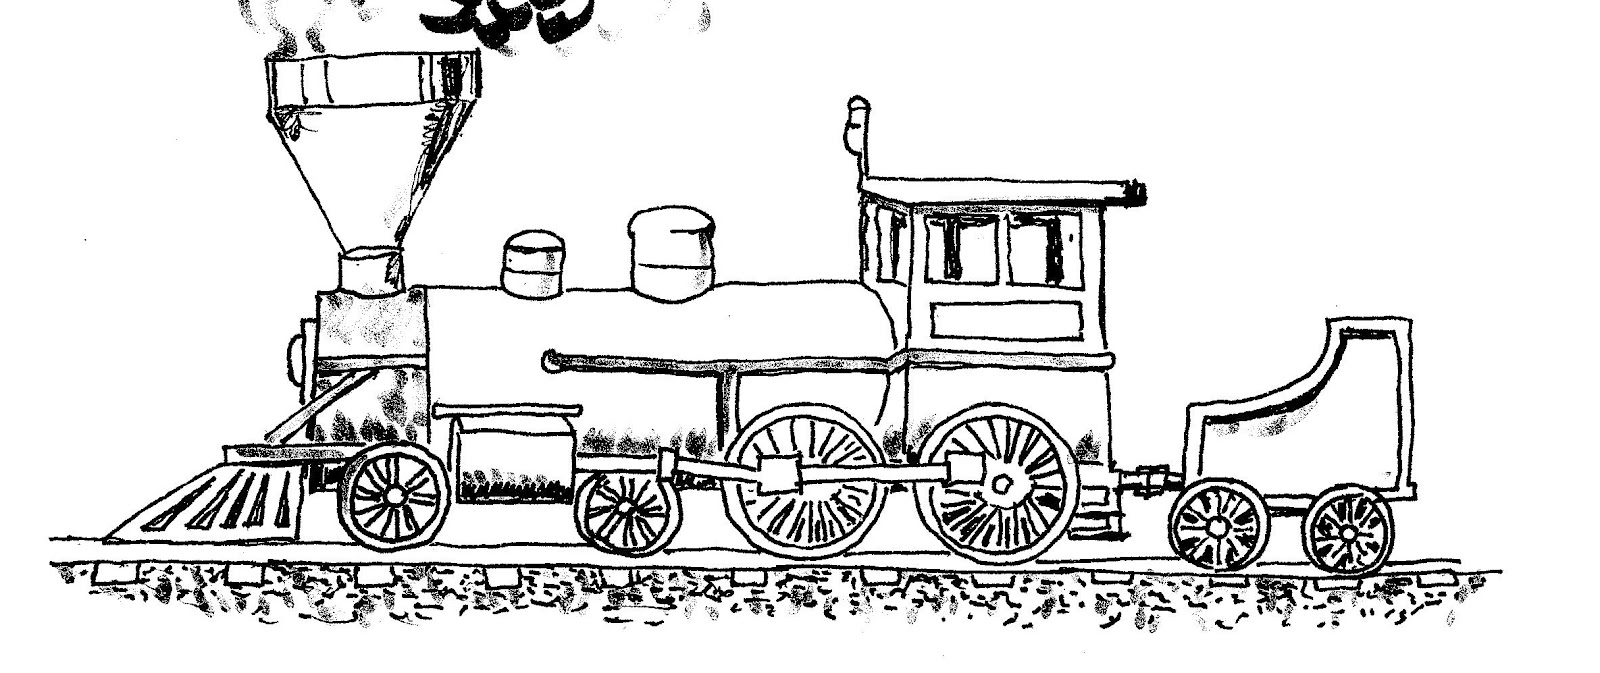 how to draw steam how to draw a train step by step 4 train drawing train steam how draw to